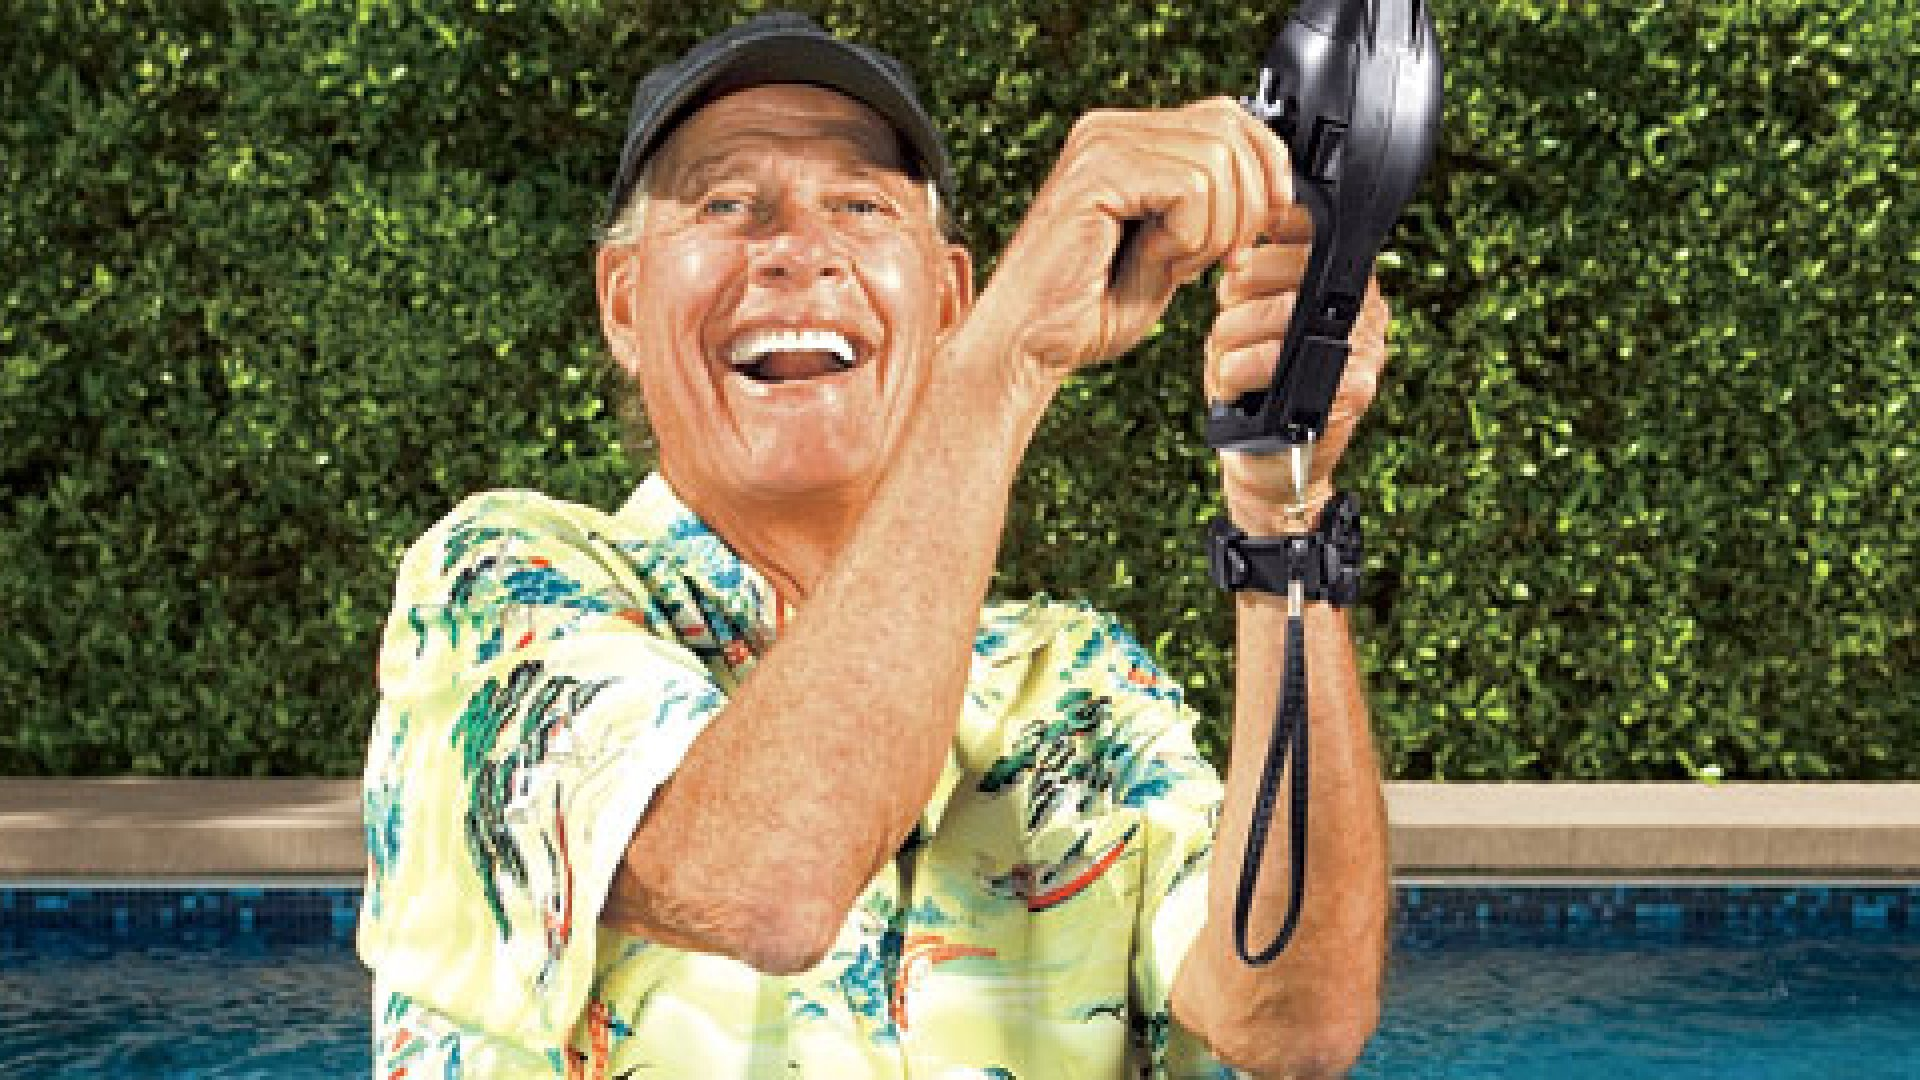 <strong>THE PITCHMAN</strong> Ron Popeil with his Pocket Fisherman. A great product, he believes, deserves a brilliant infomercial.